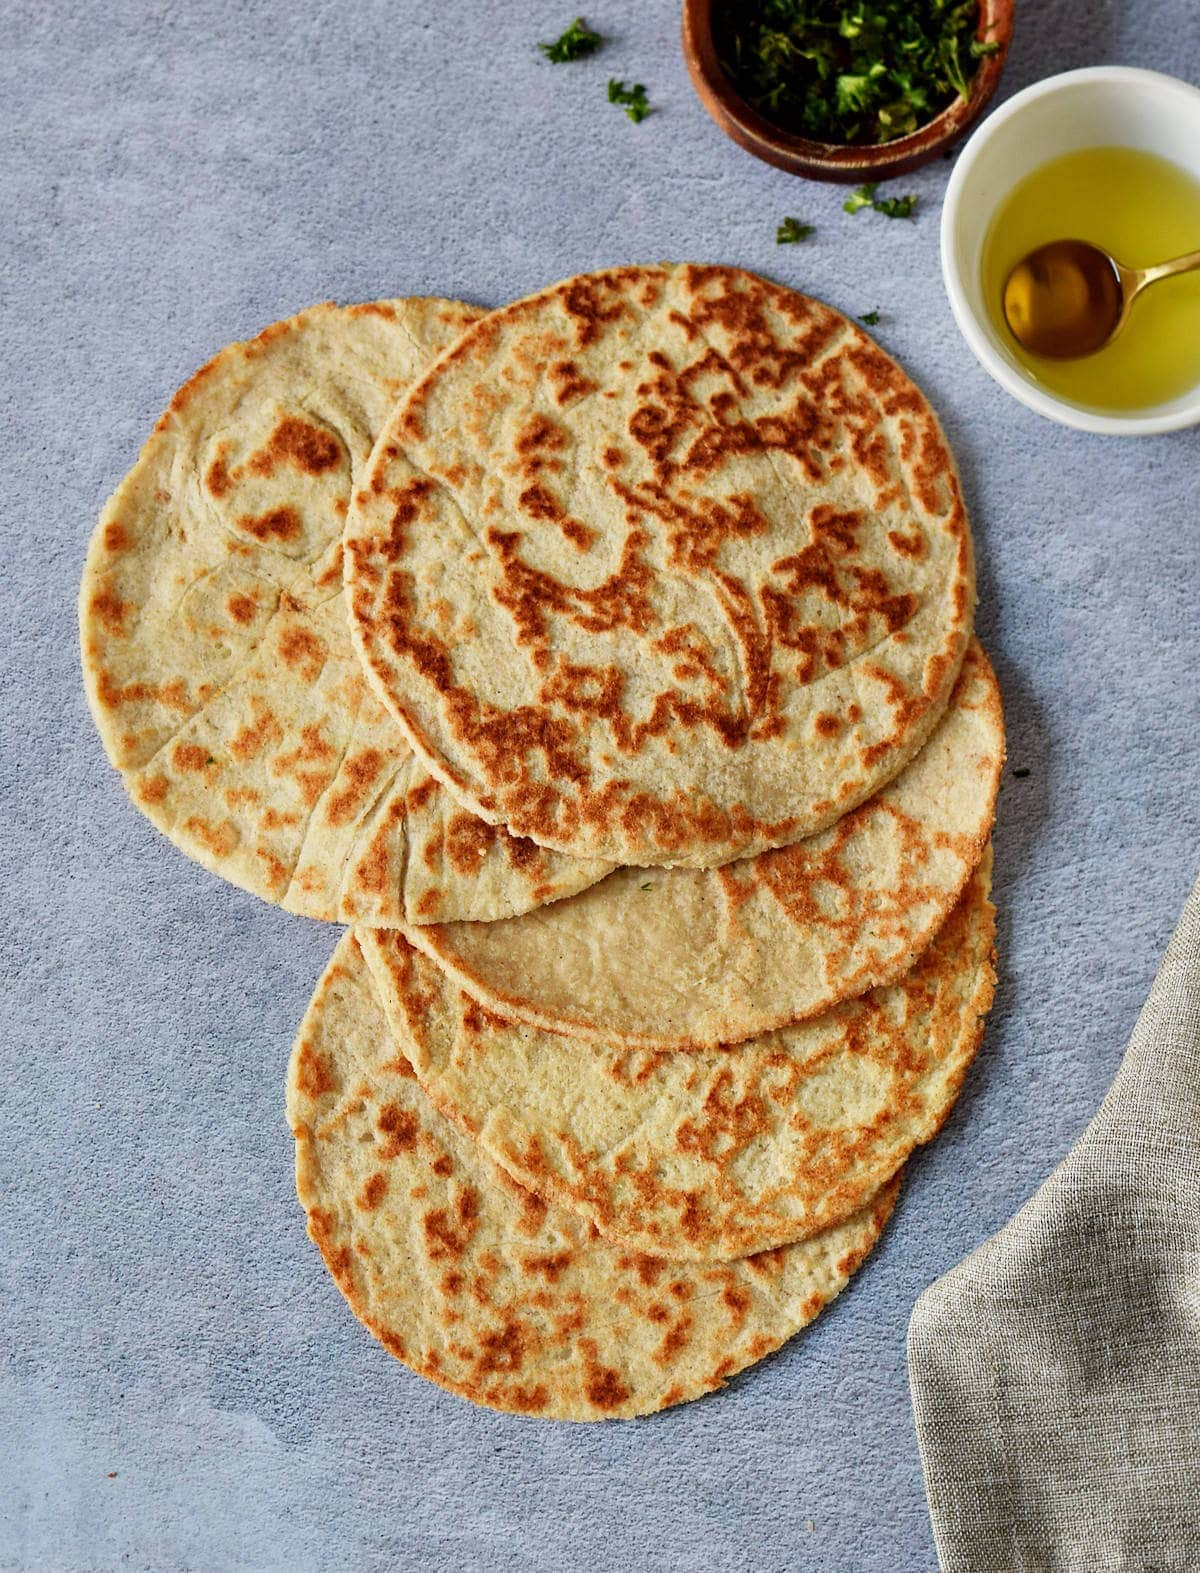 5 low-carb keto tortillas on blue-gray backdrop